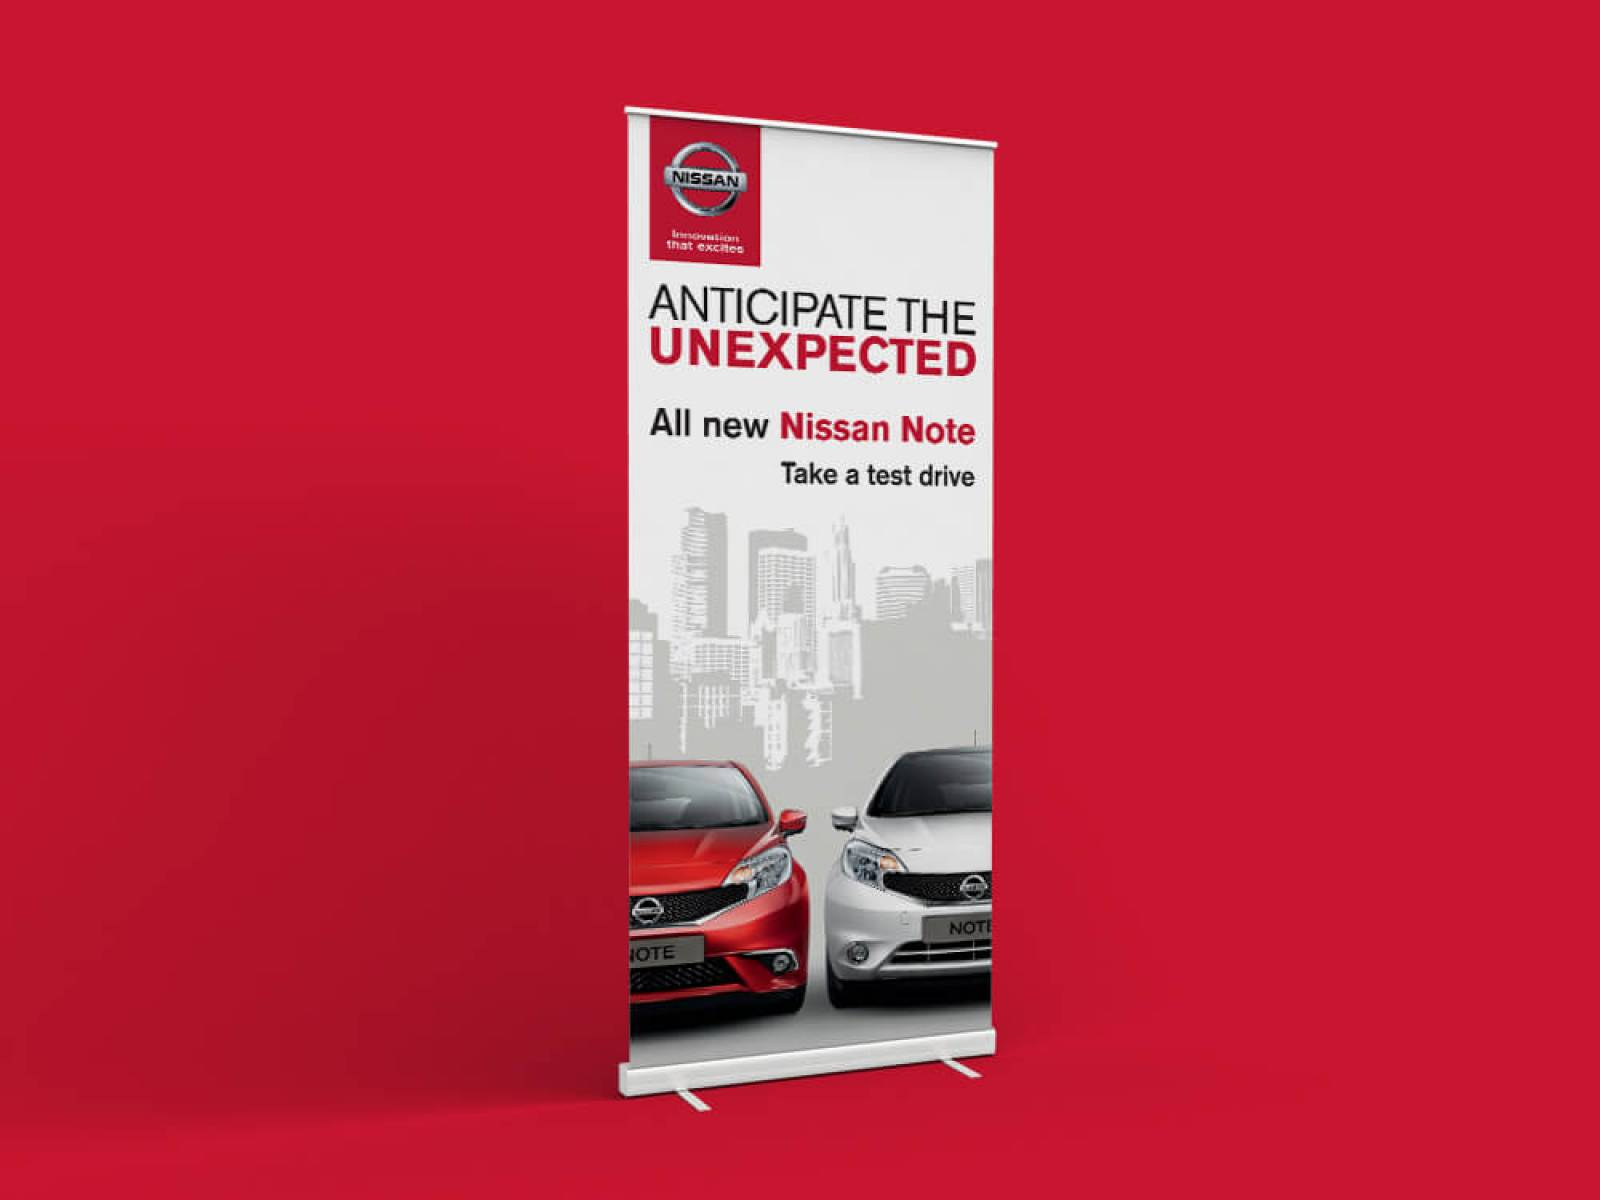 Nissan-banner-design-agency-graphic-design-canterbury-03.jpg